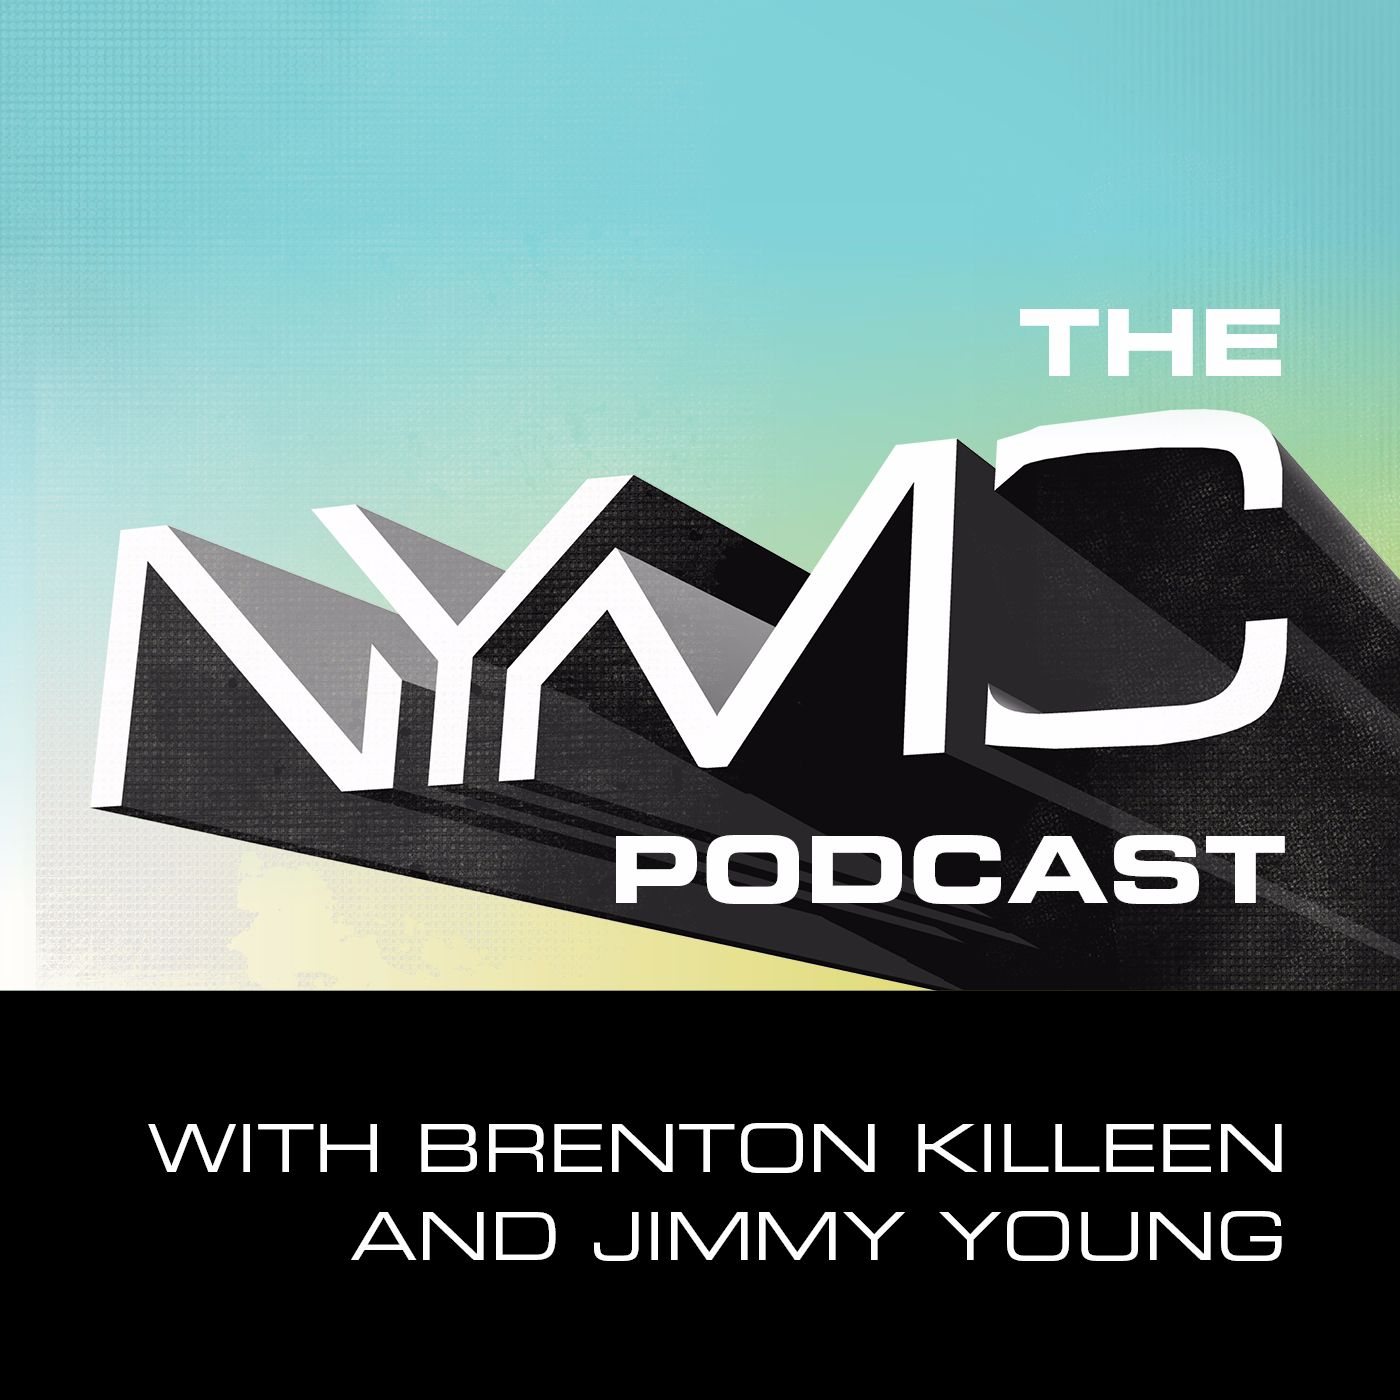 The National Youth Ministry Podcast